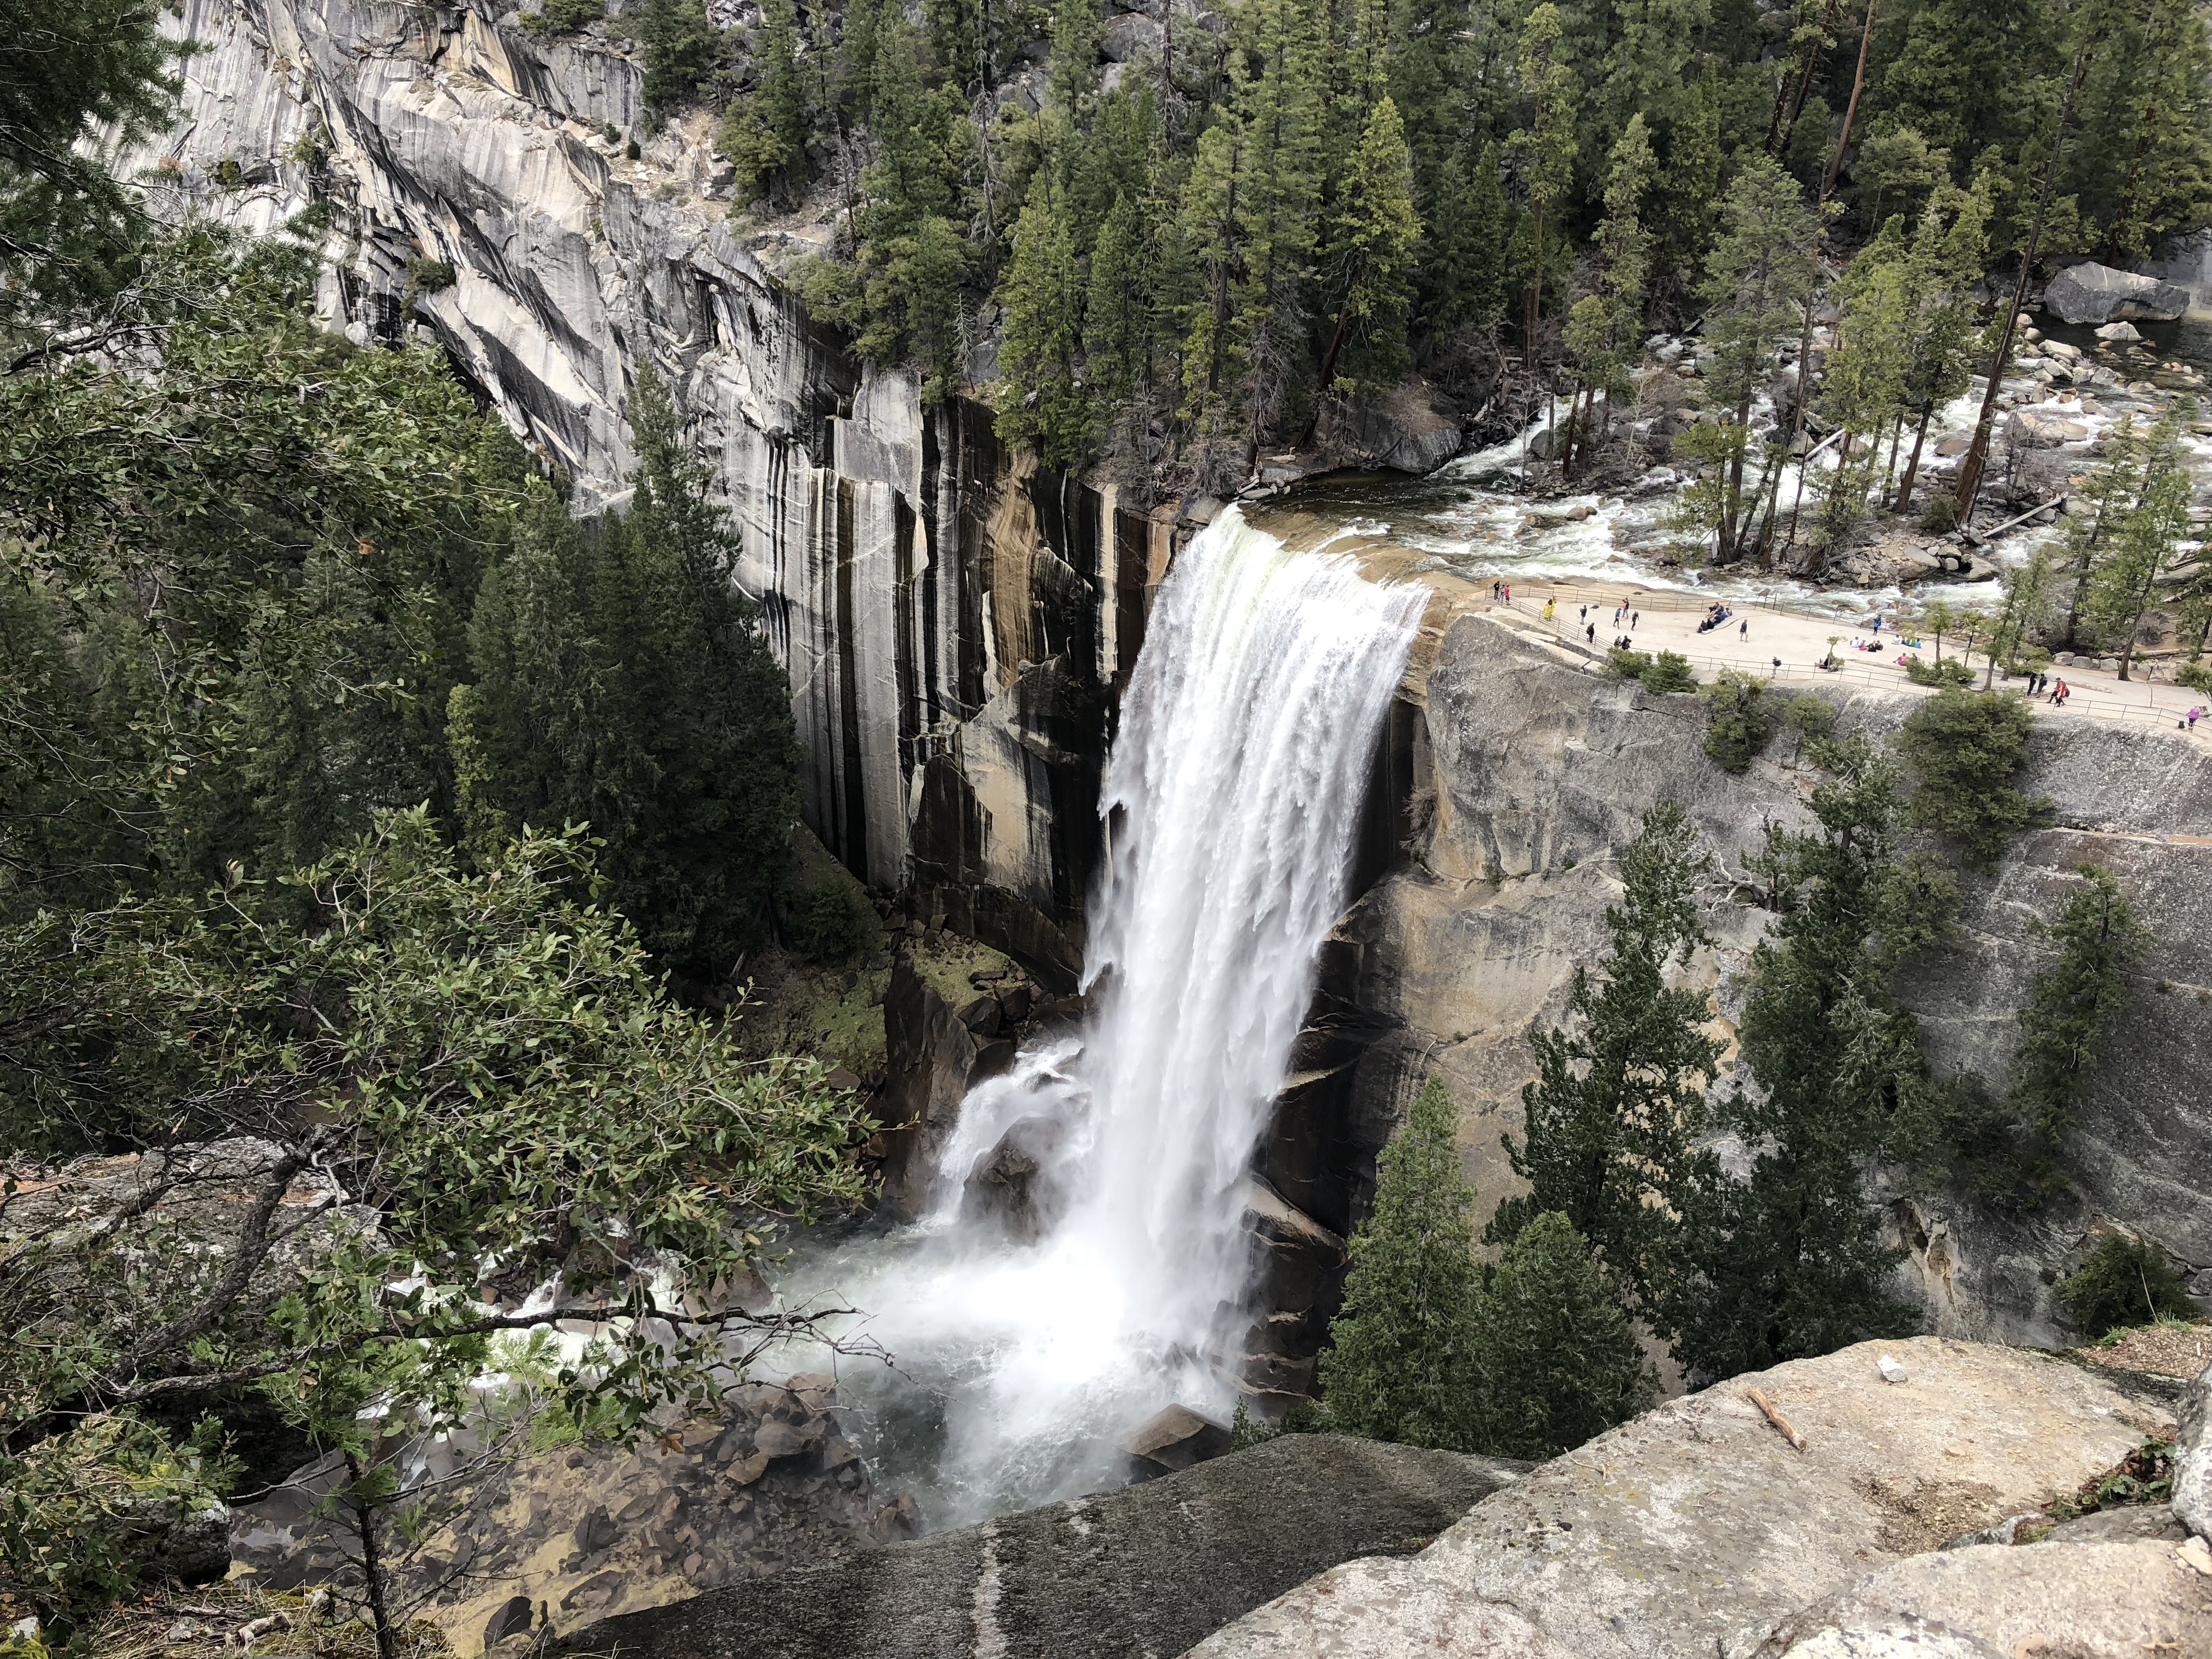 a view of the top of Vernal Fall from near the John Muir Trail